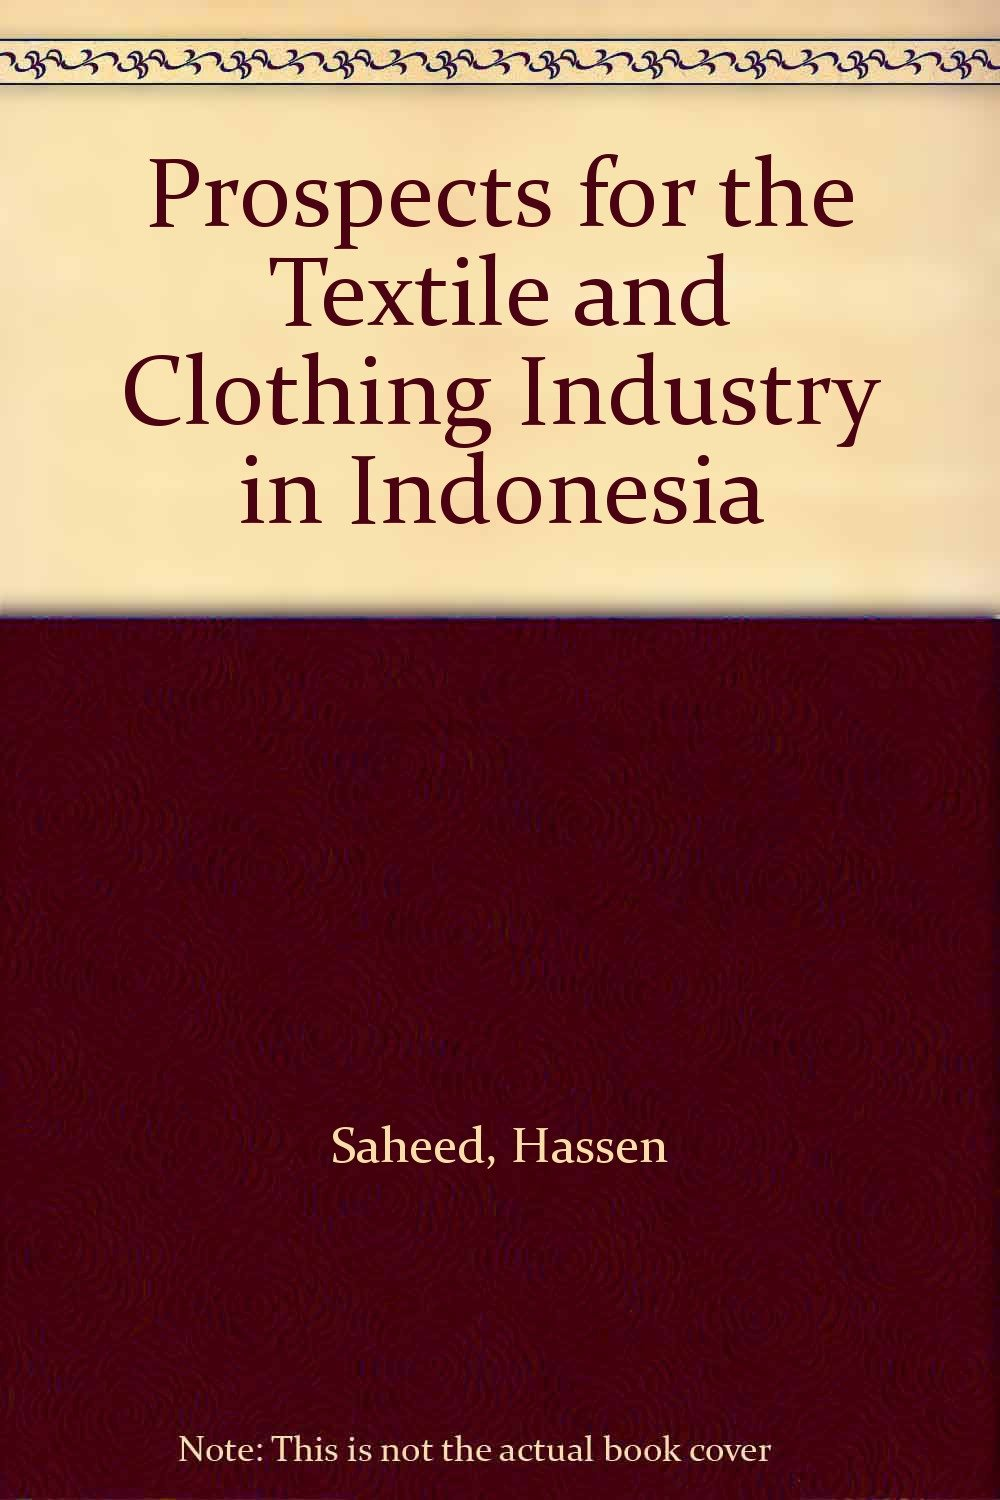 Prospects for the Textile and Clothing Industry in Indonesia pdf